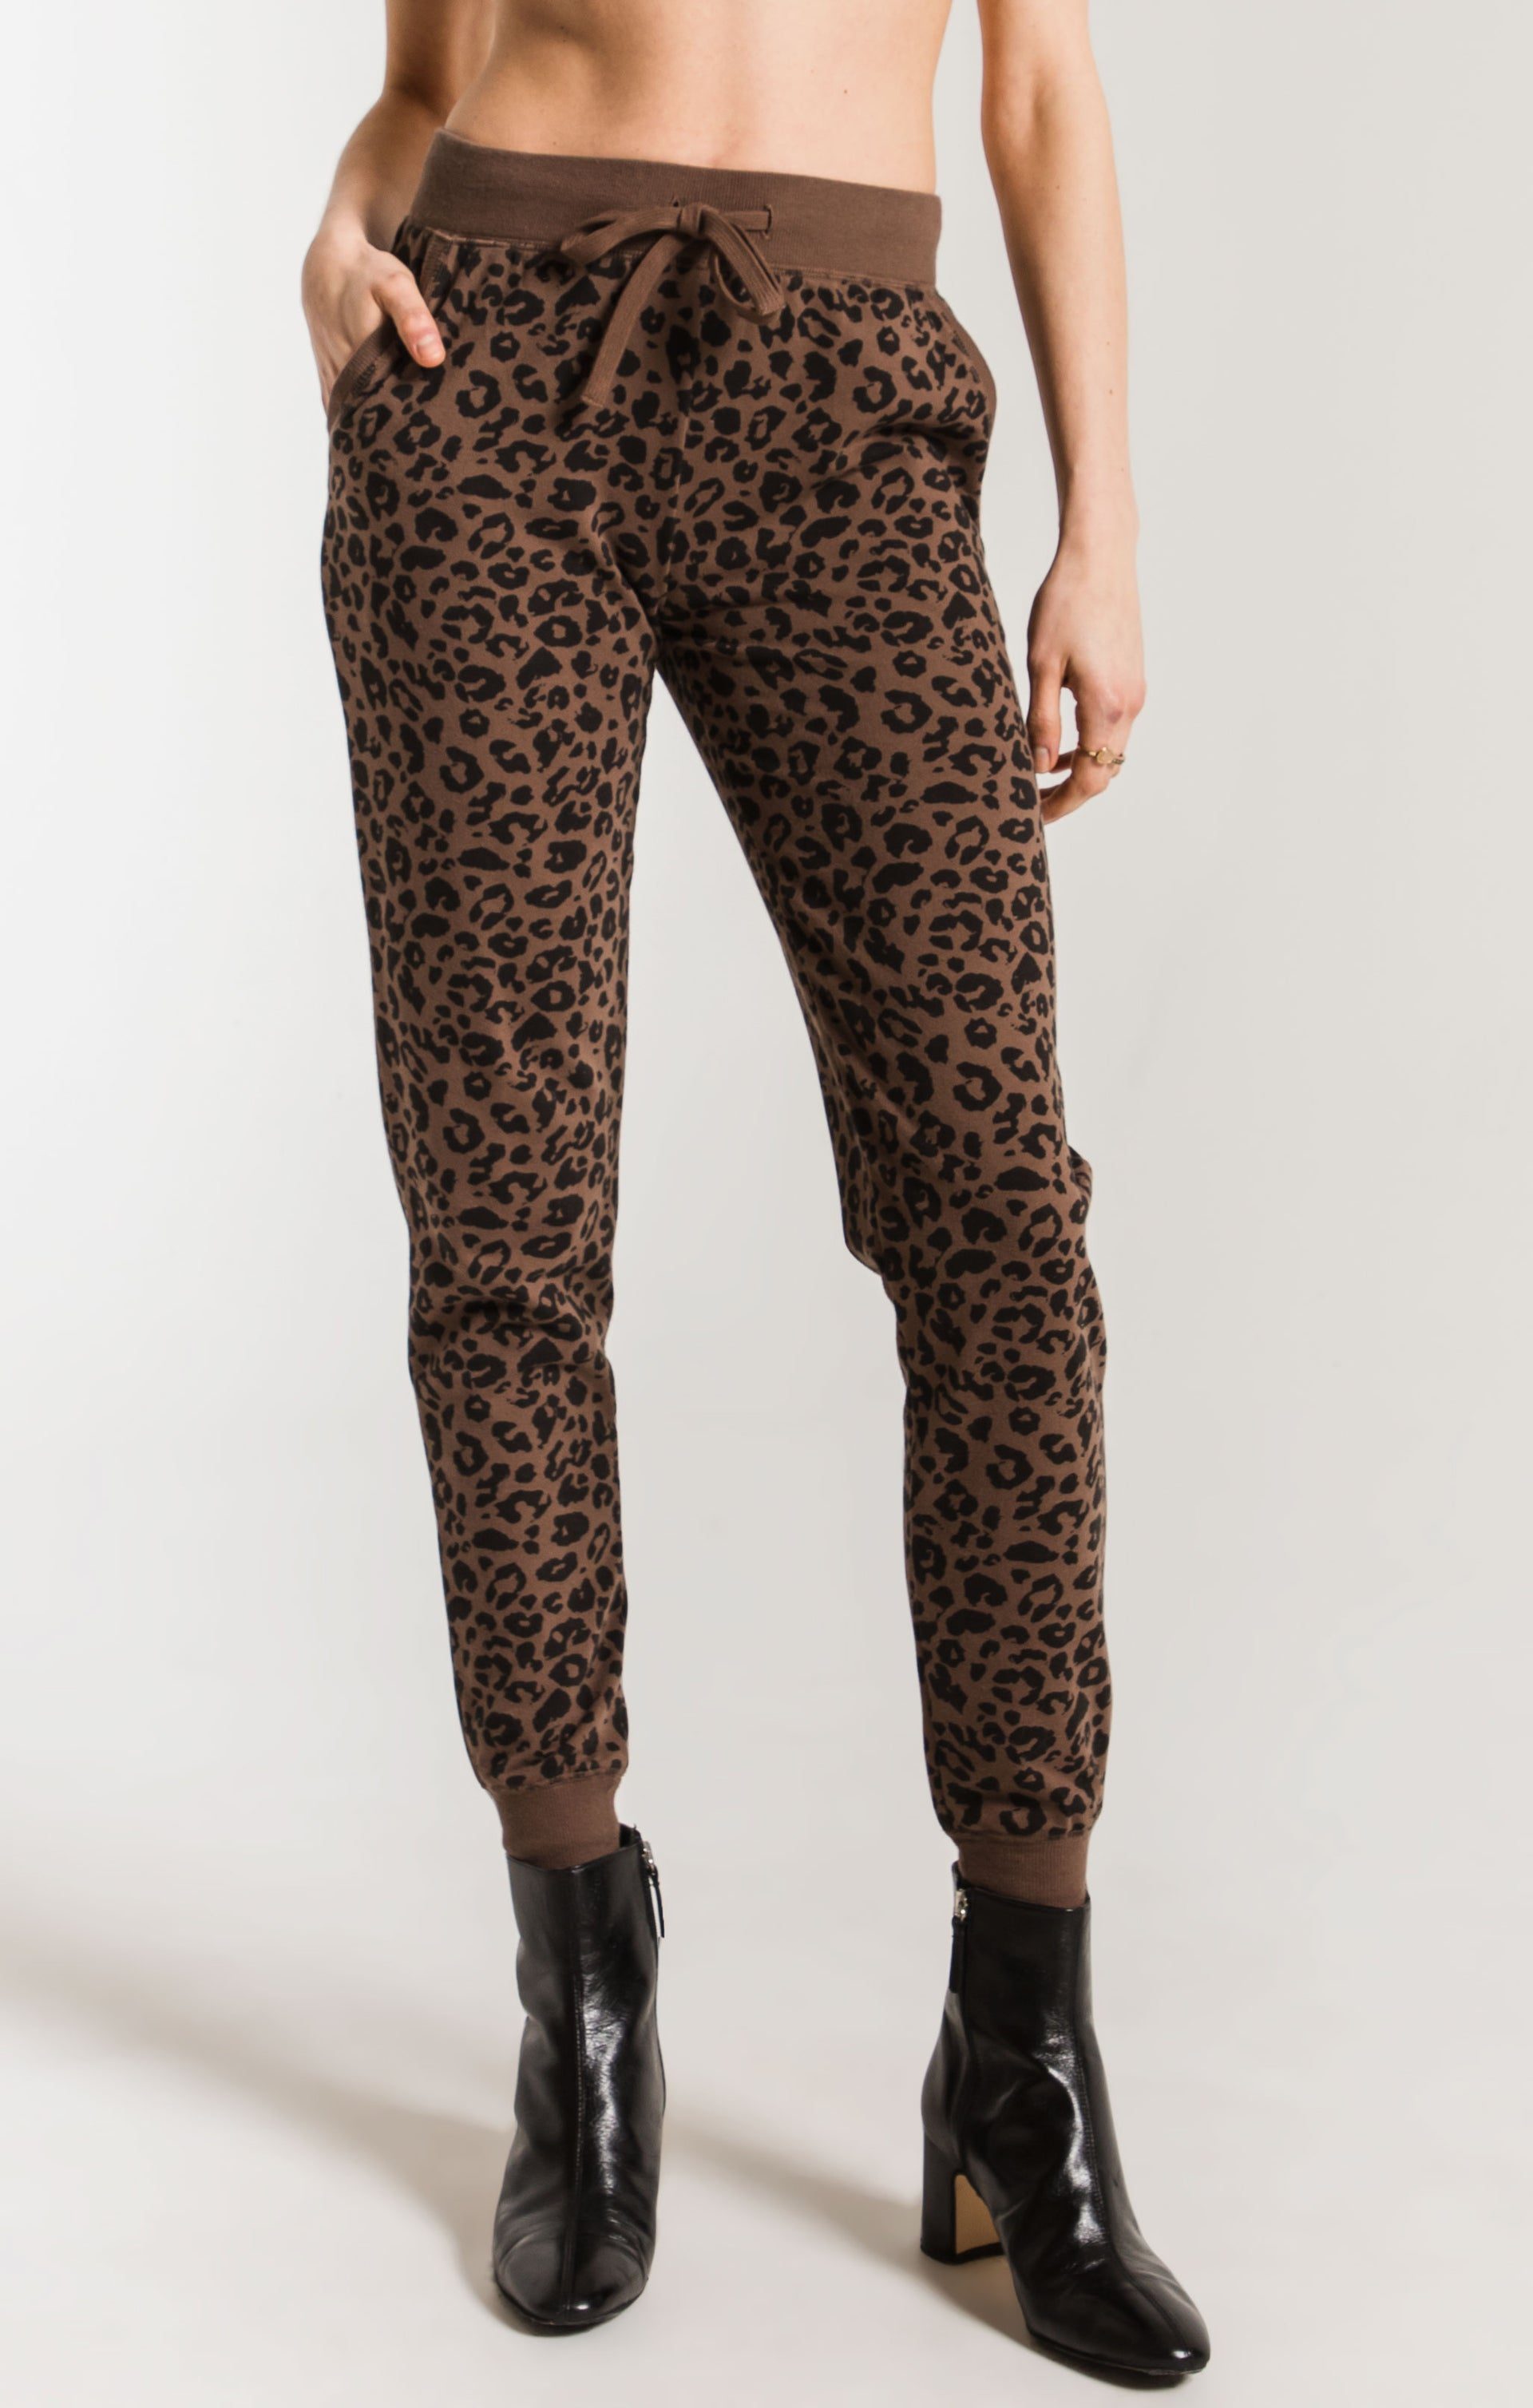 Pants Leopard Jogger French Roast